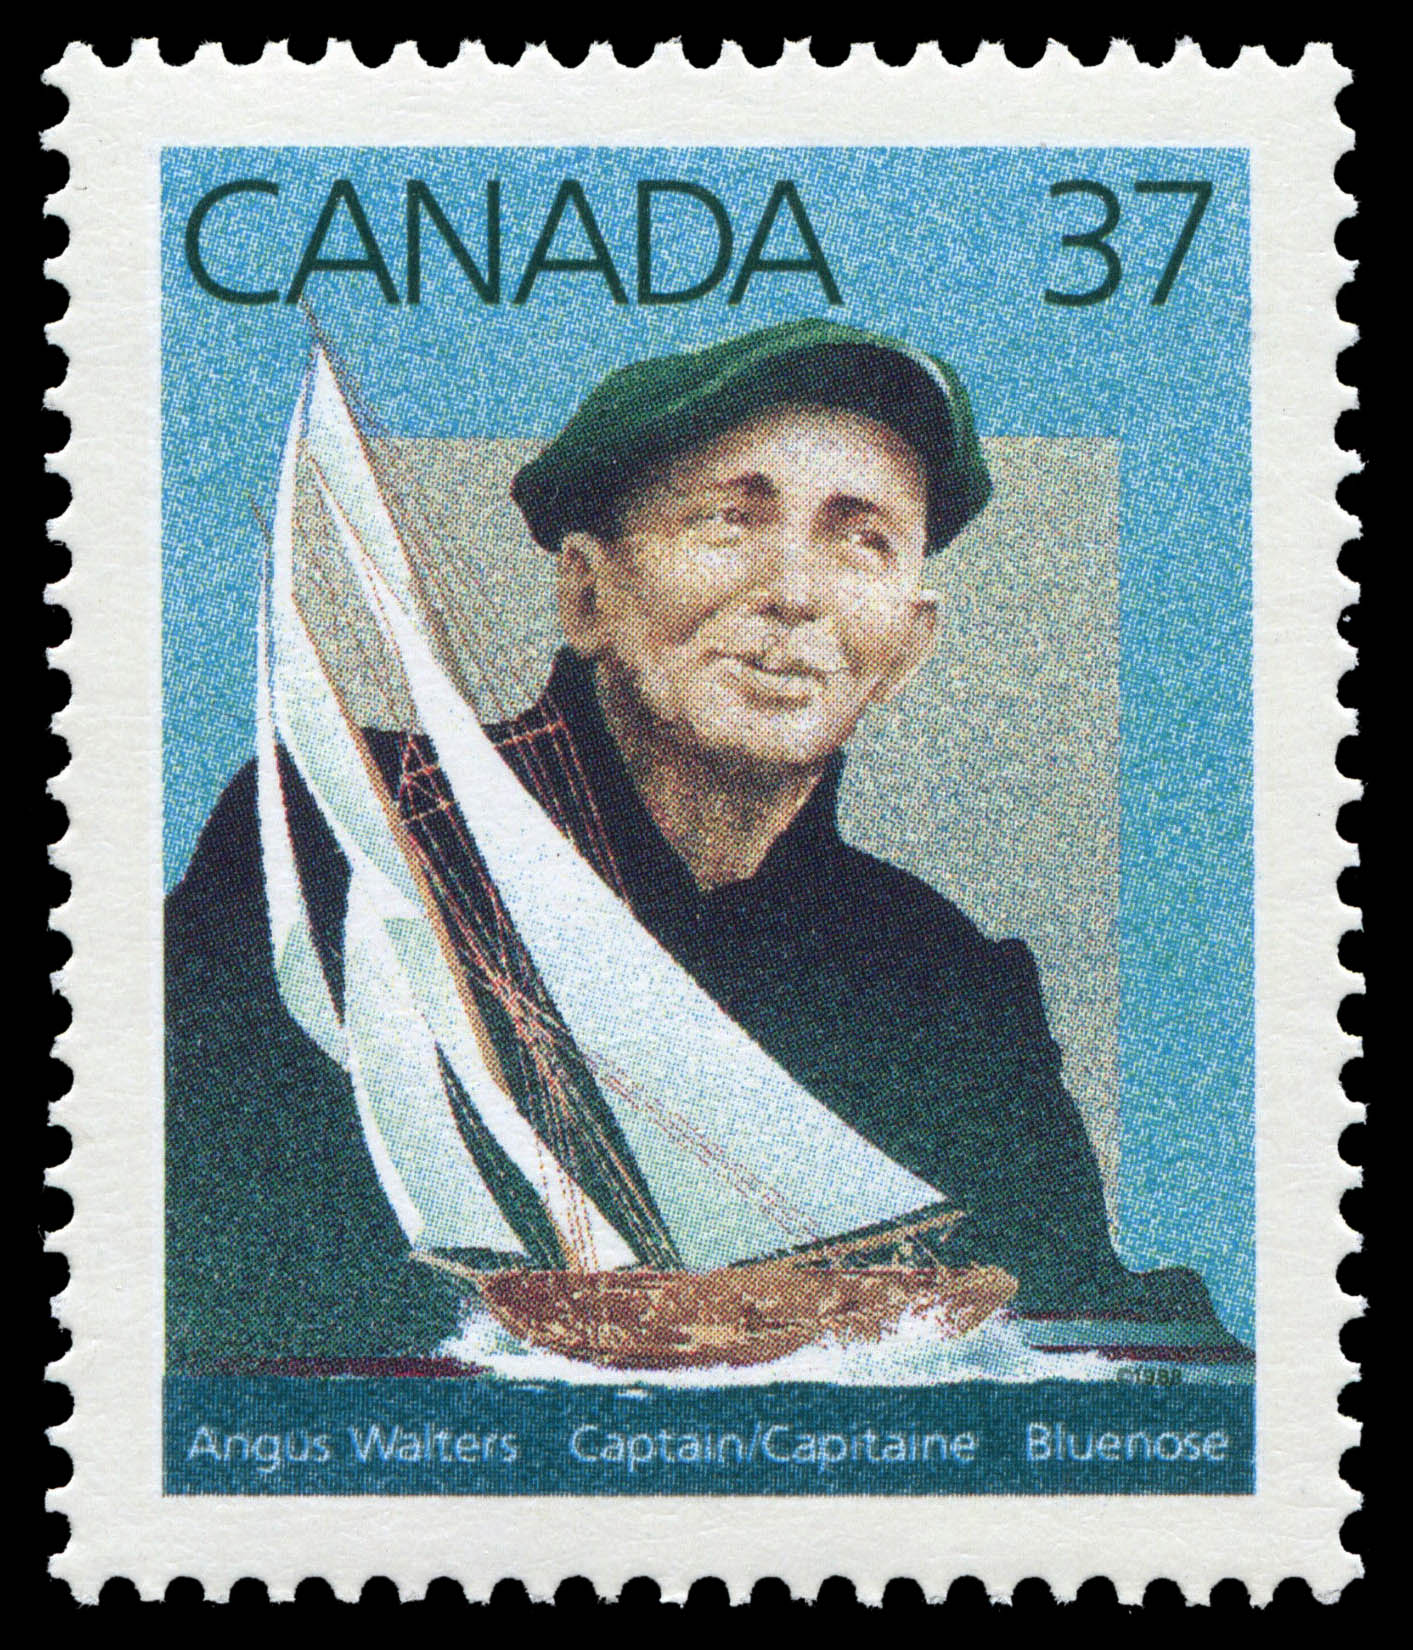 Angus Walters, Captain, Bluenose Canada Postage Stamp